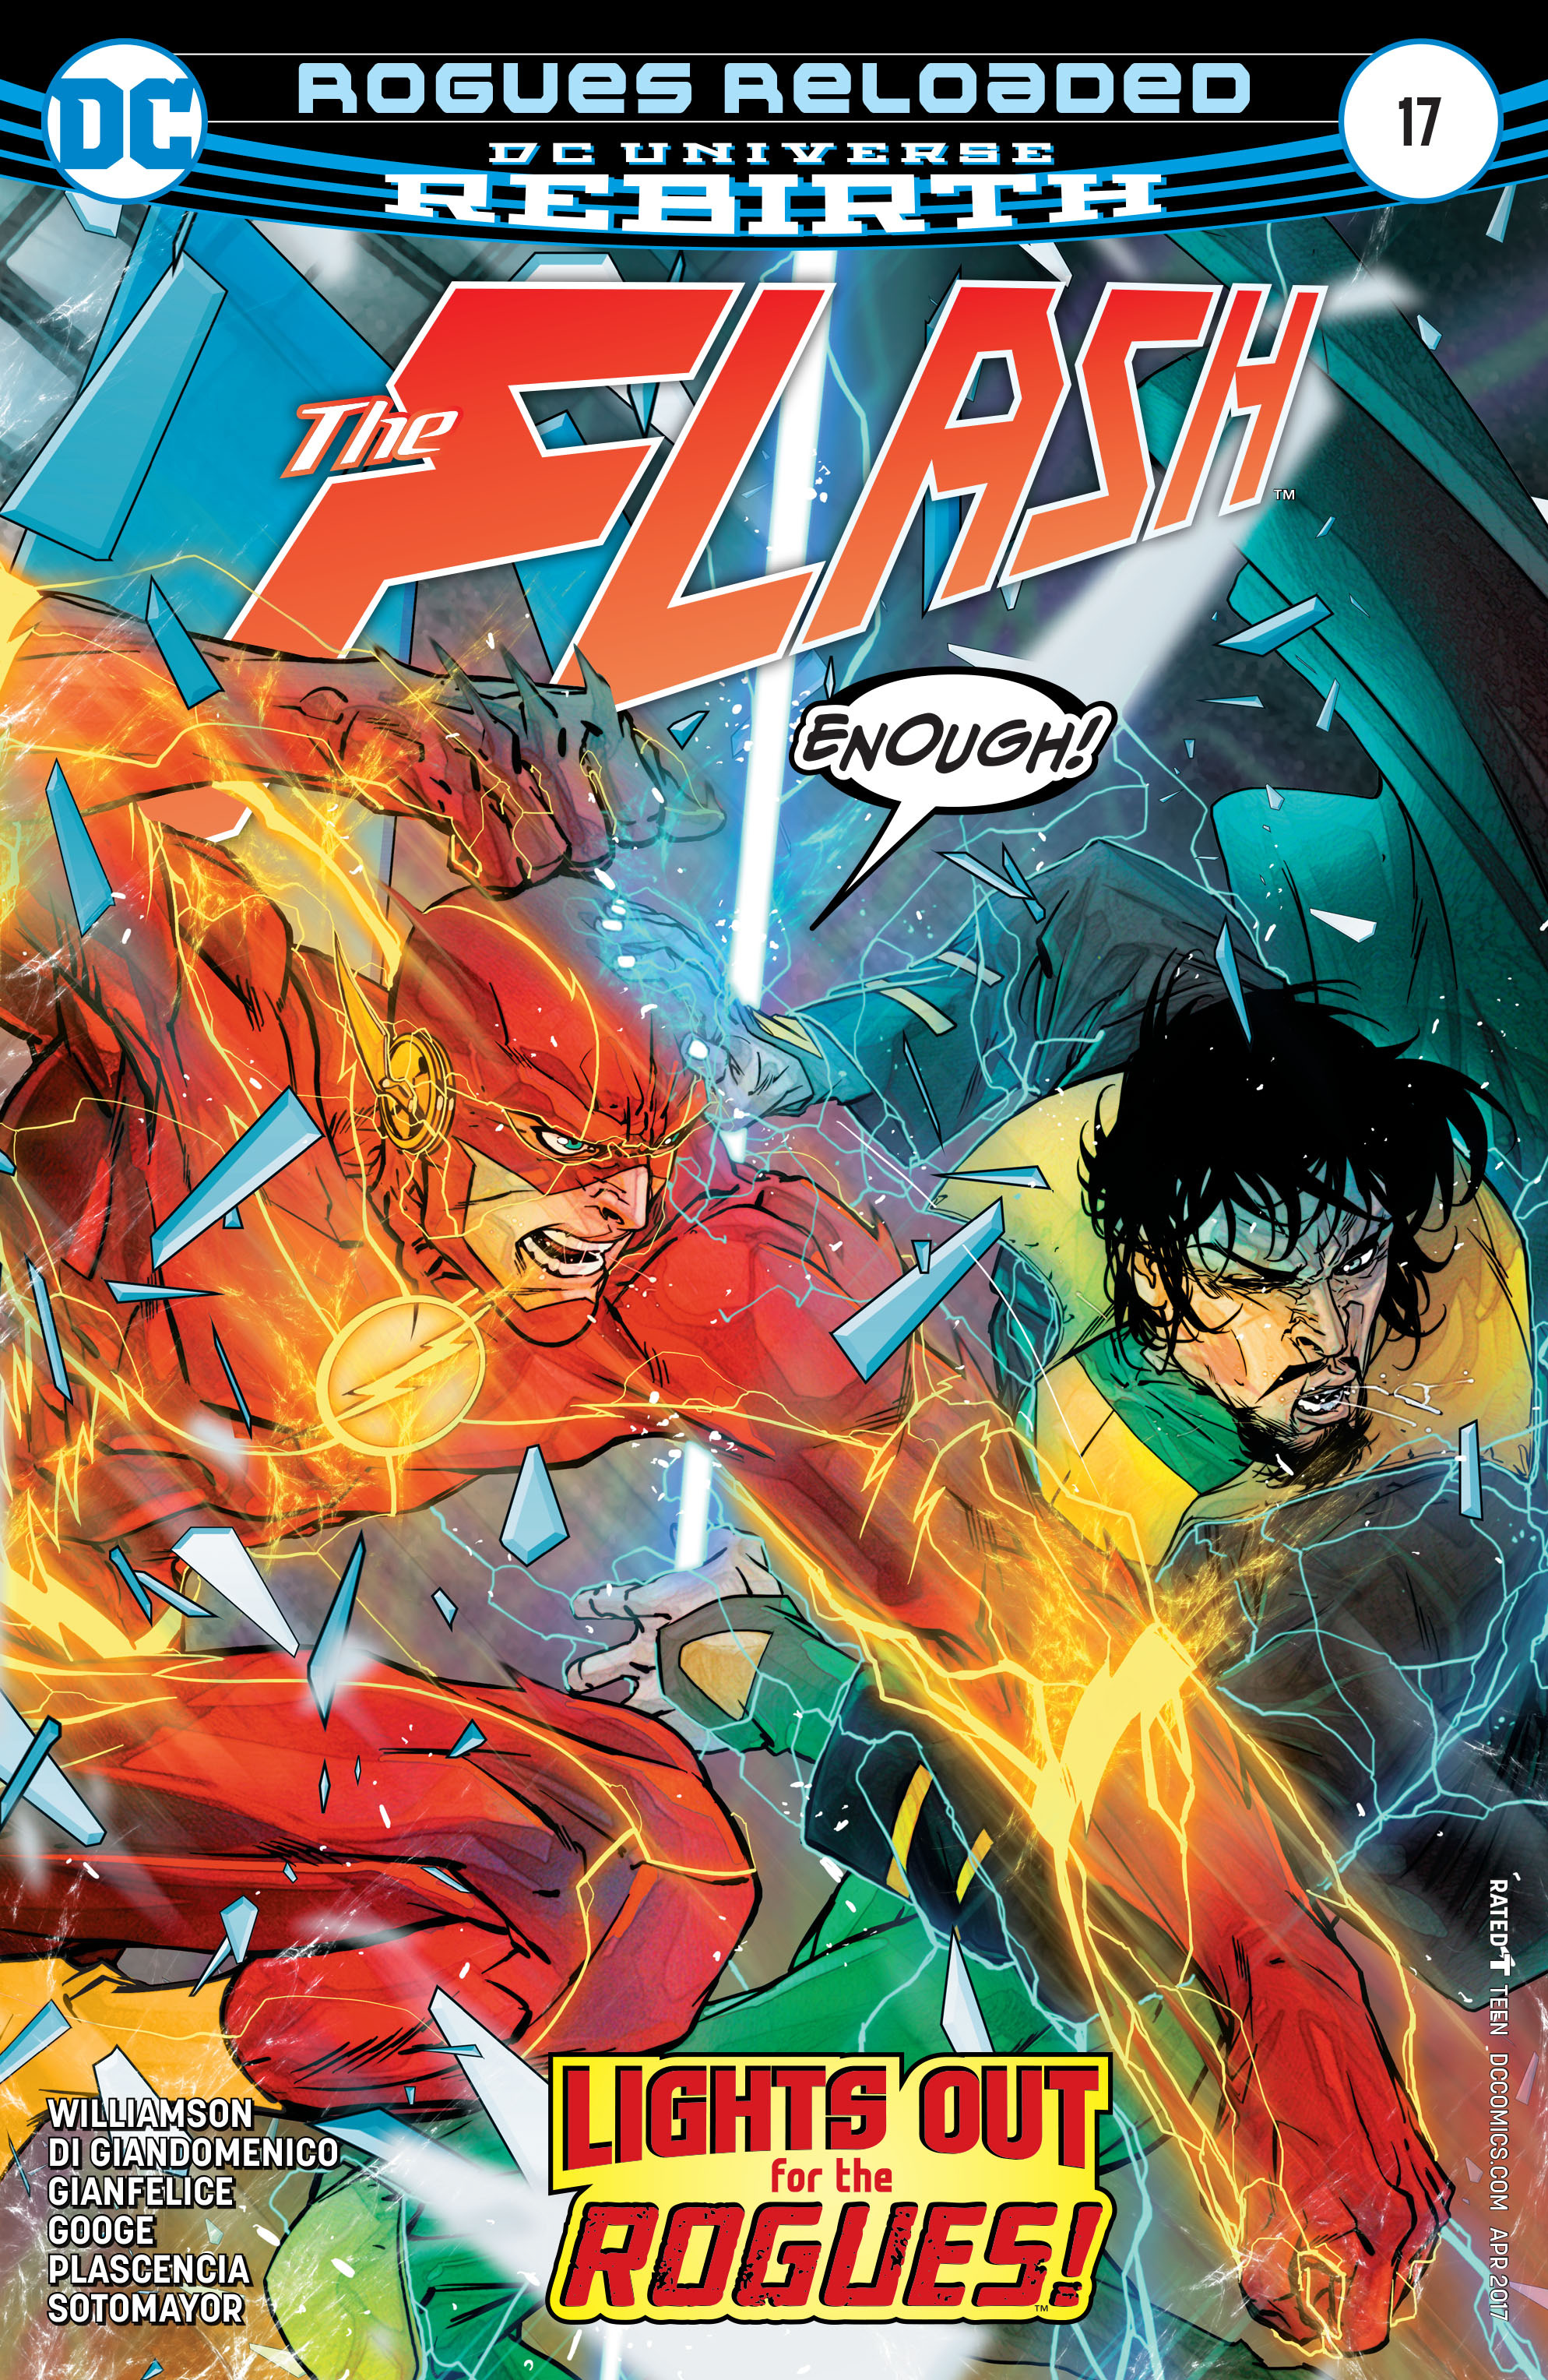 The Flash (2016) issue 17 - Page 1